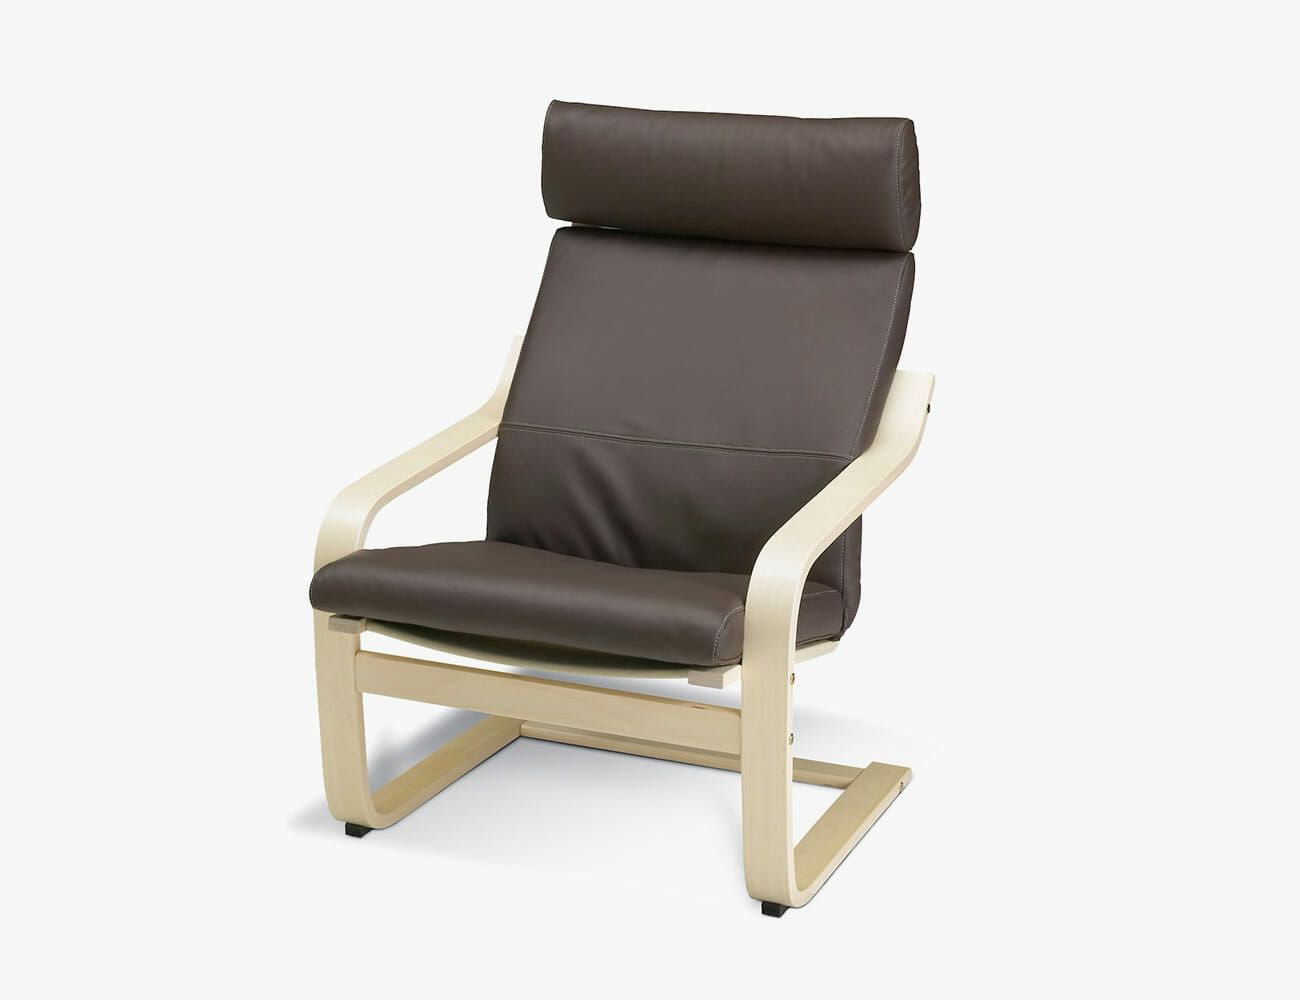 Enjoyable Outgrowing Your Ikea Furniture Heres What To Buy Next Cjindustries Chair Design For Home Cjindustriesco